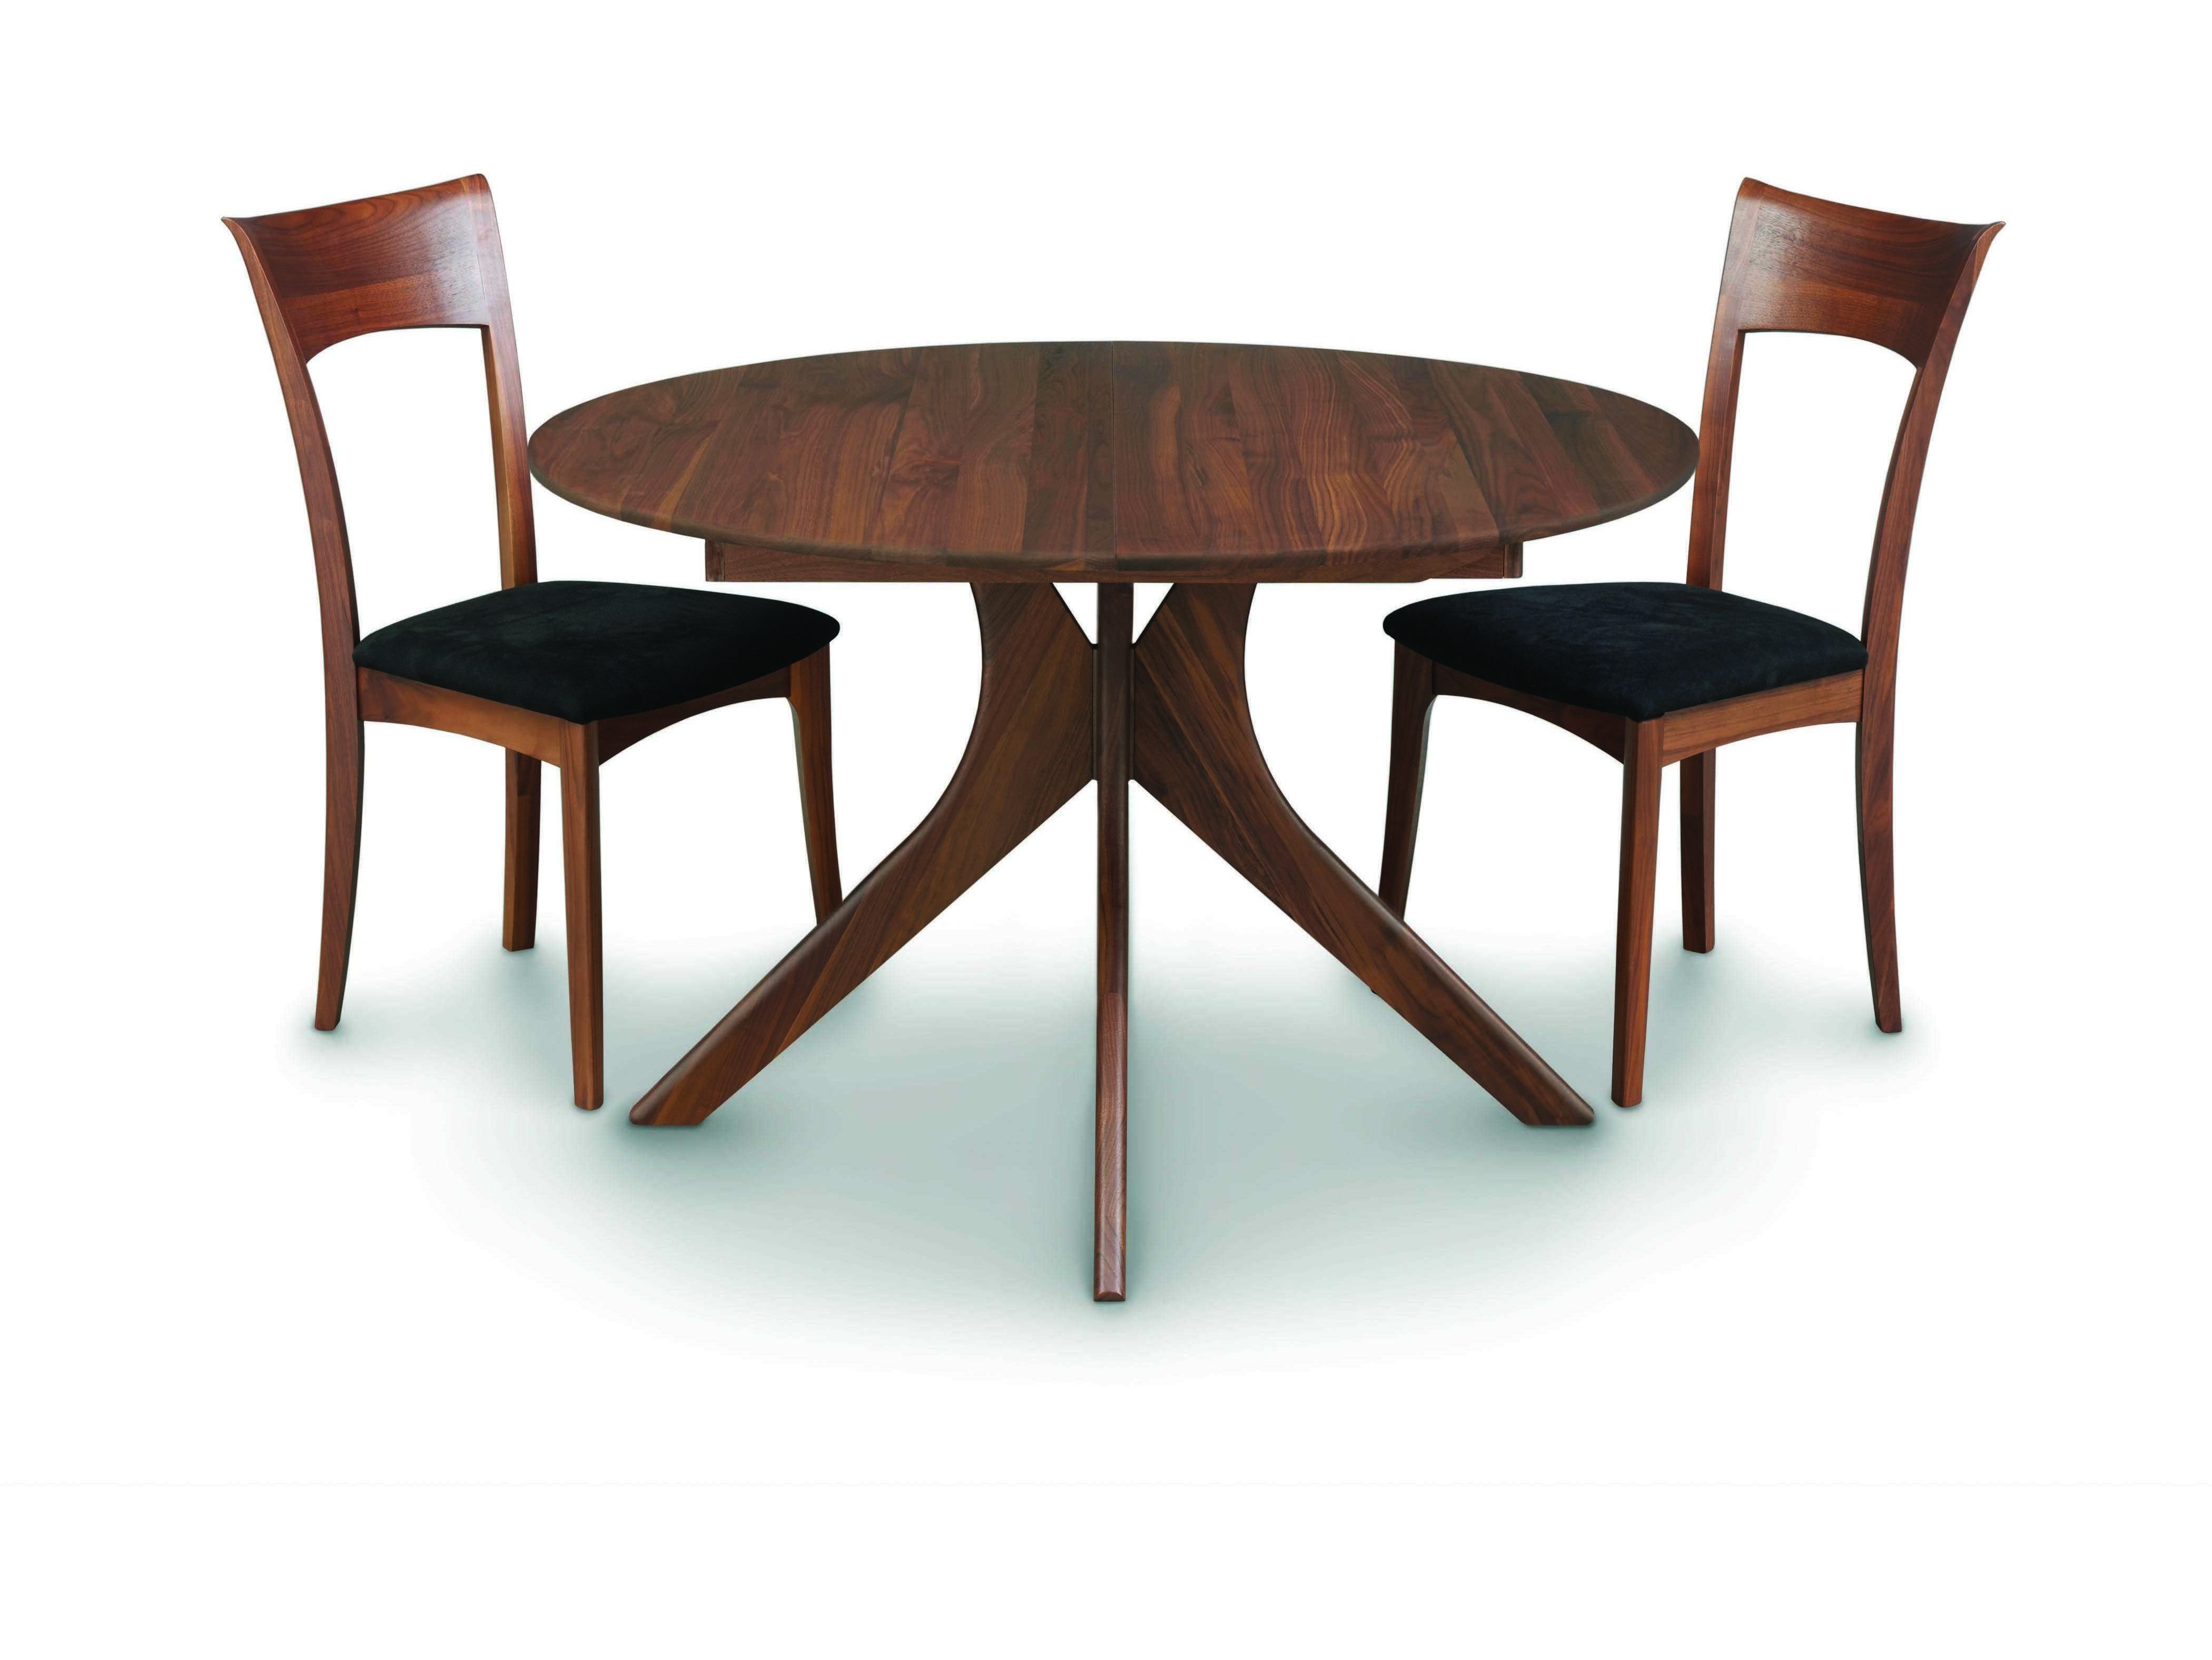 Copeland Furniture Audrey 48 Wide Round Extension Dining